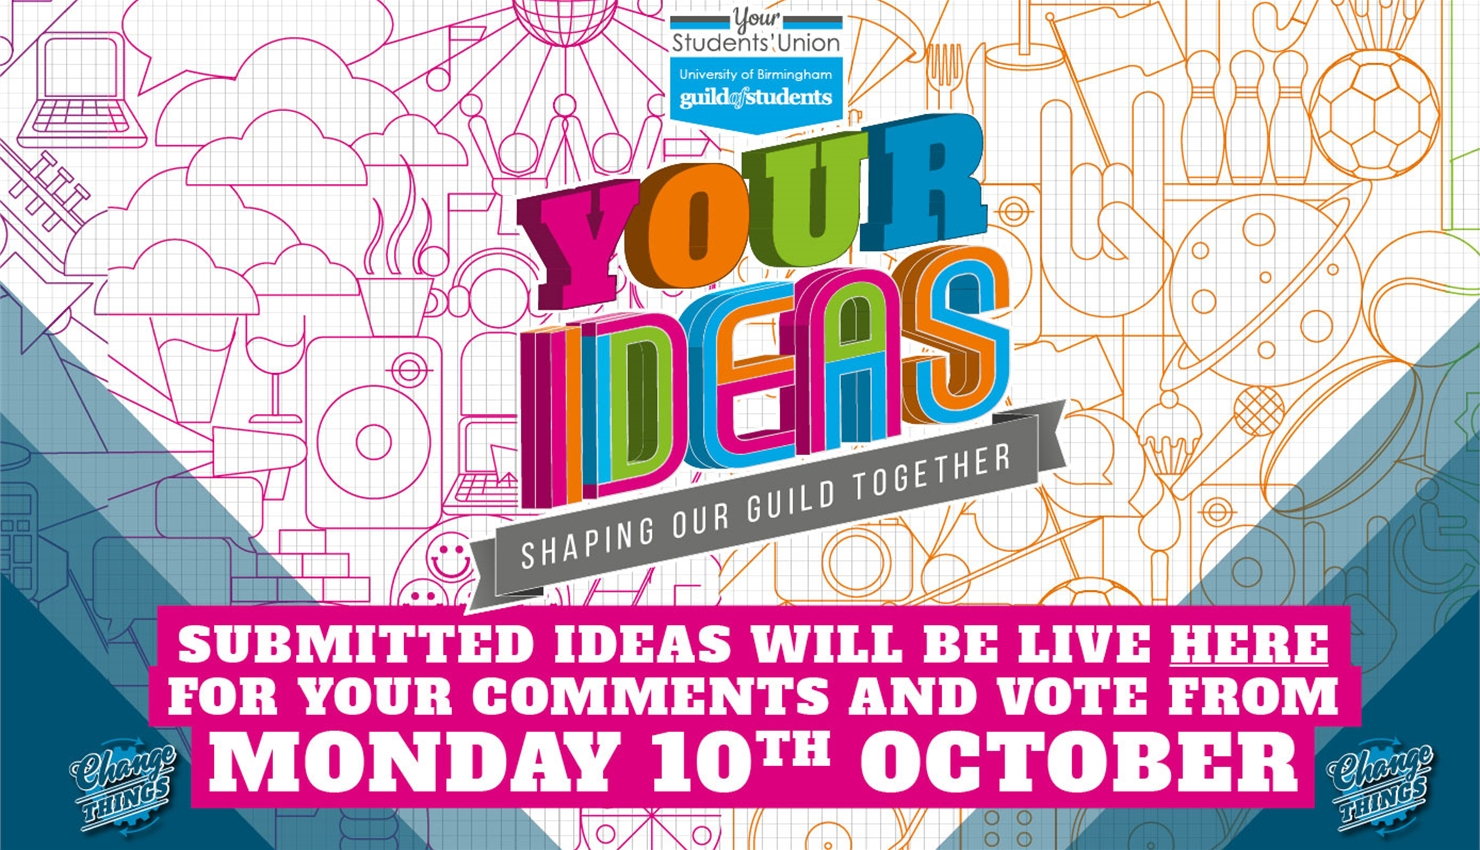 your ideas - submitted ideas will be live here for your comments and vote from Monday 10th October